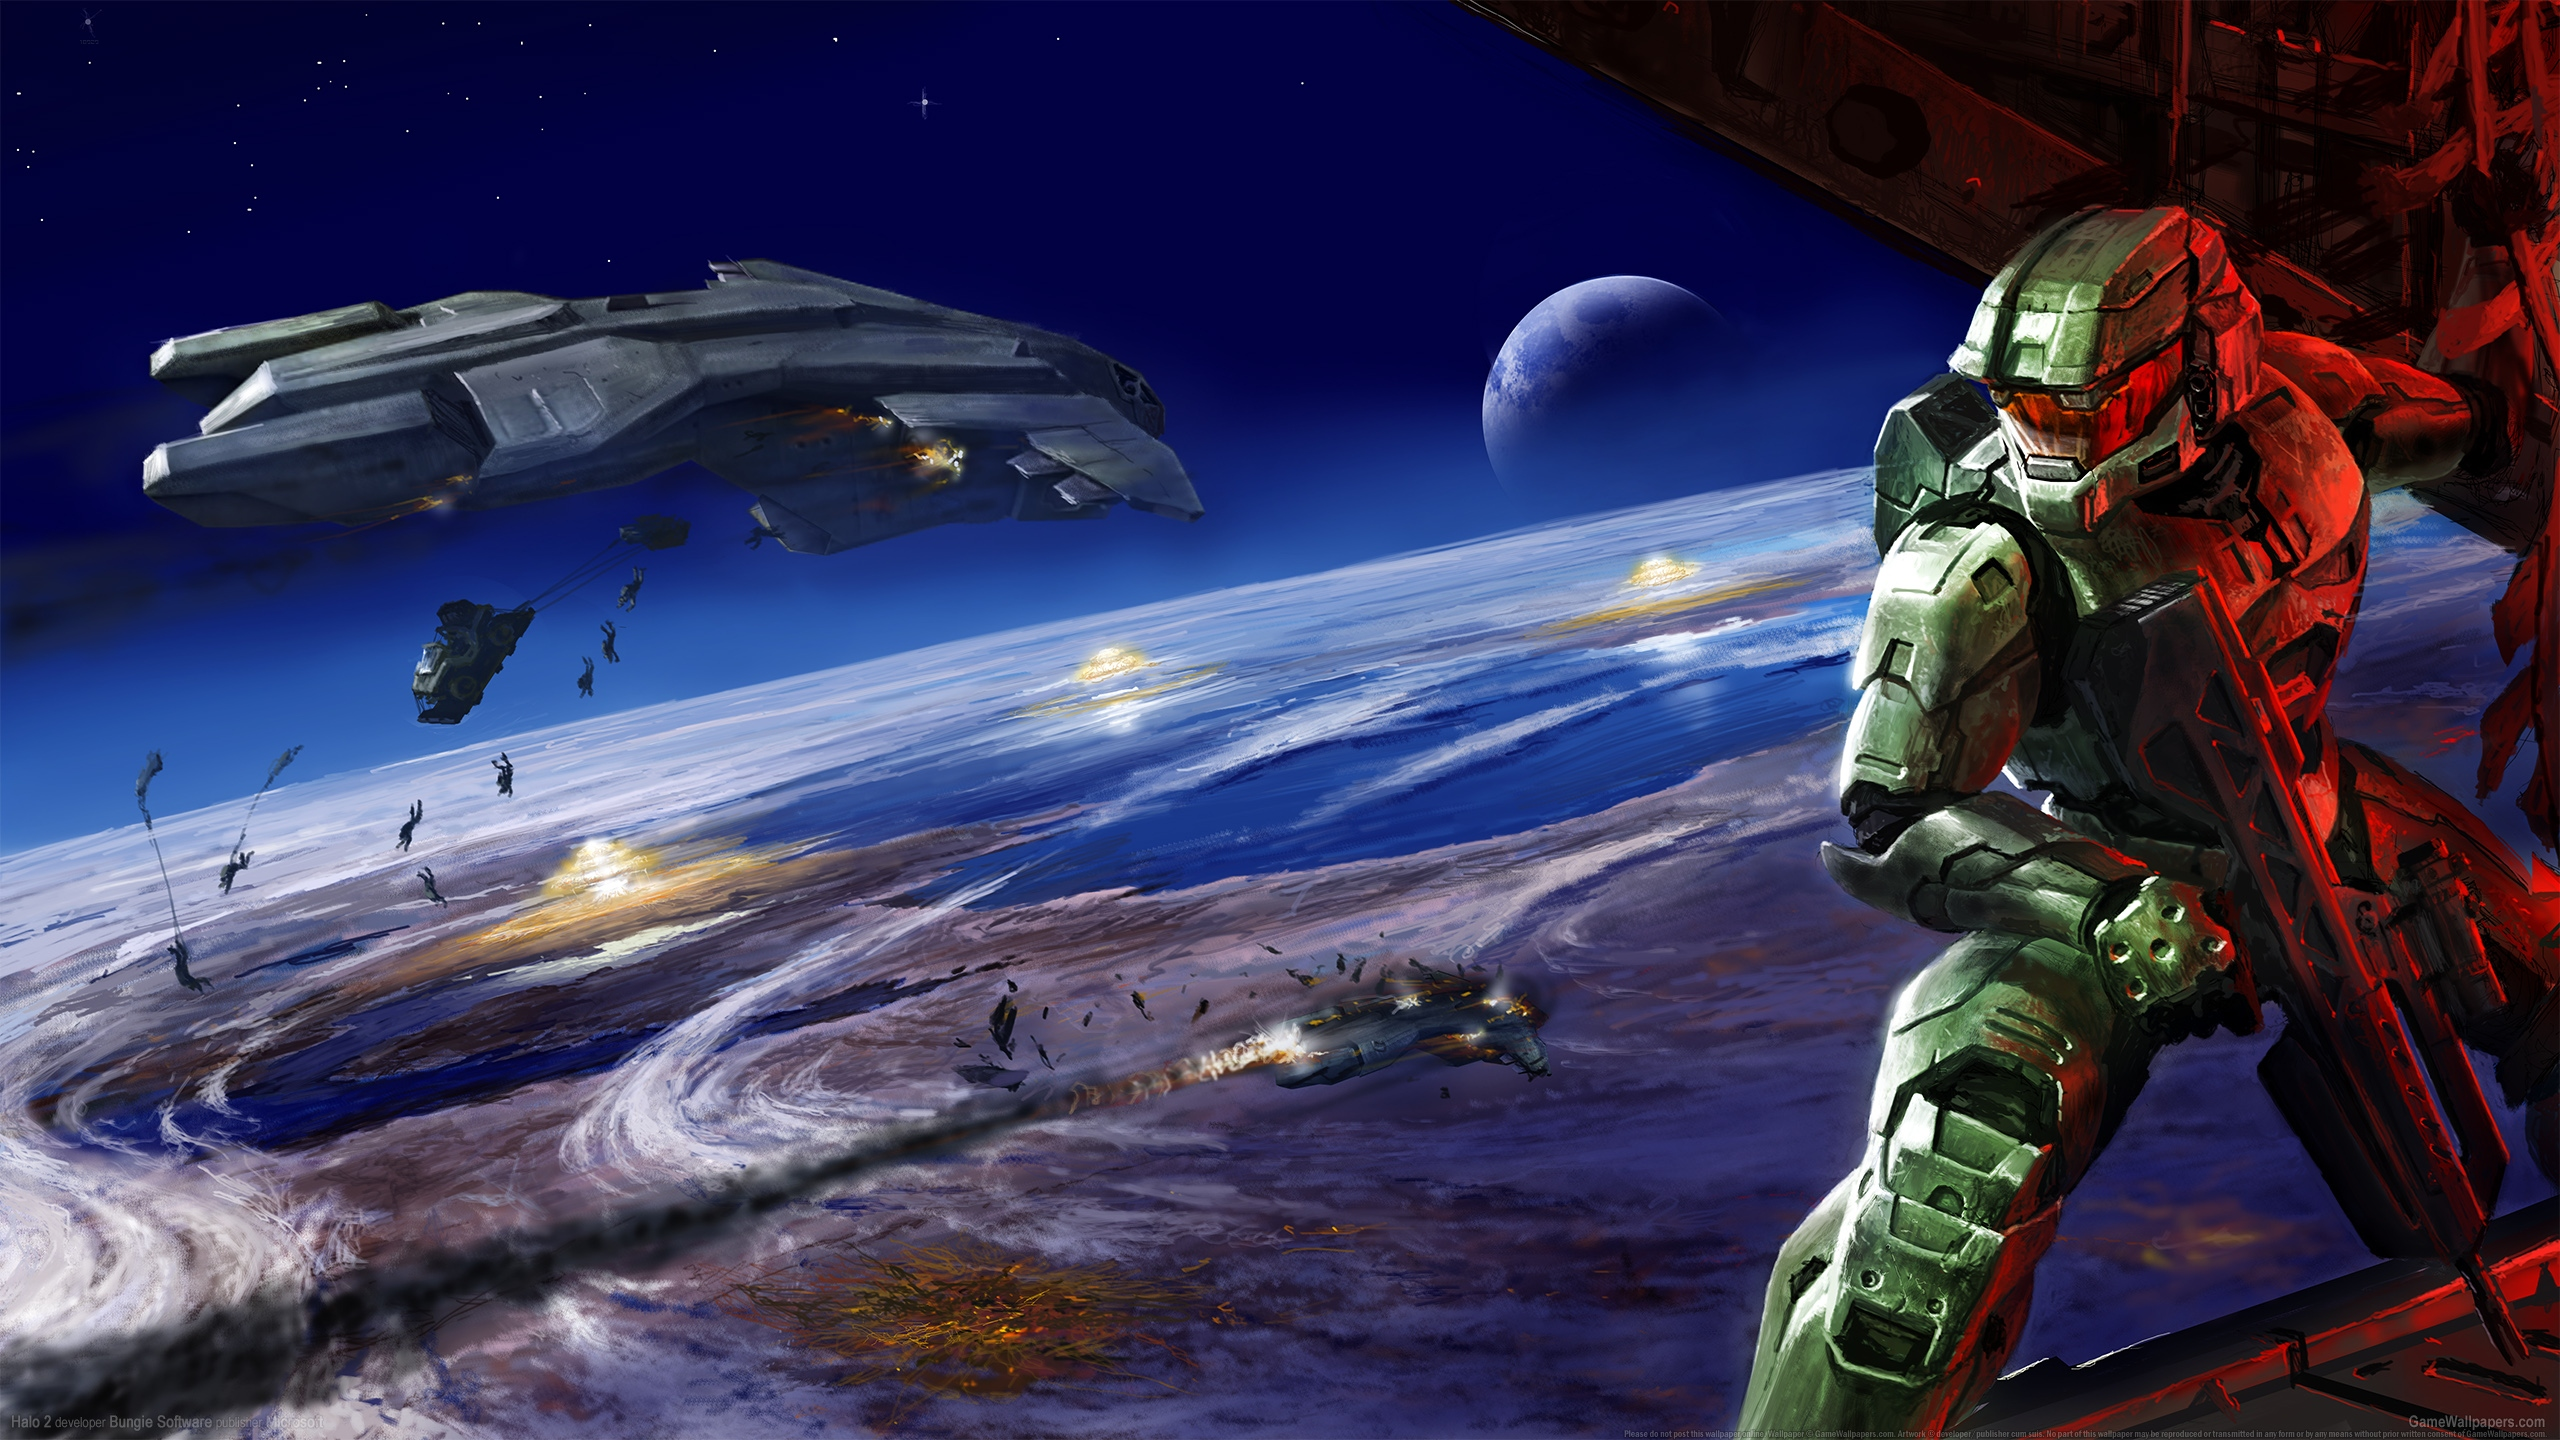 Halo 2 2560x1440 wallpaper or background 18